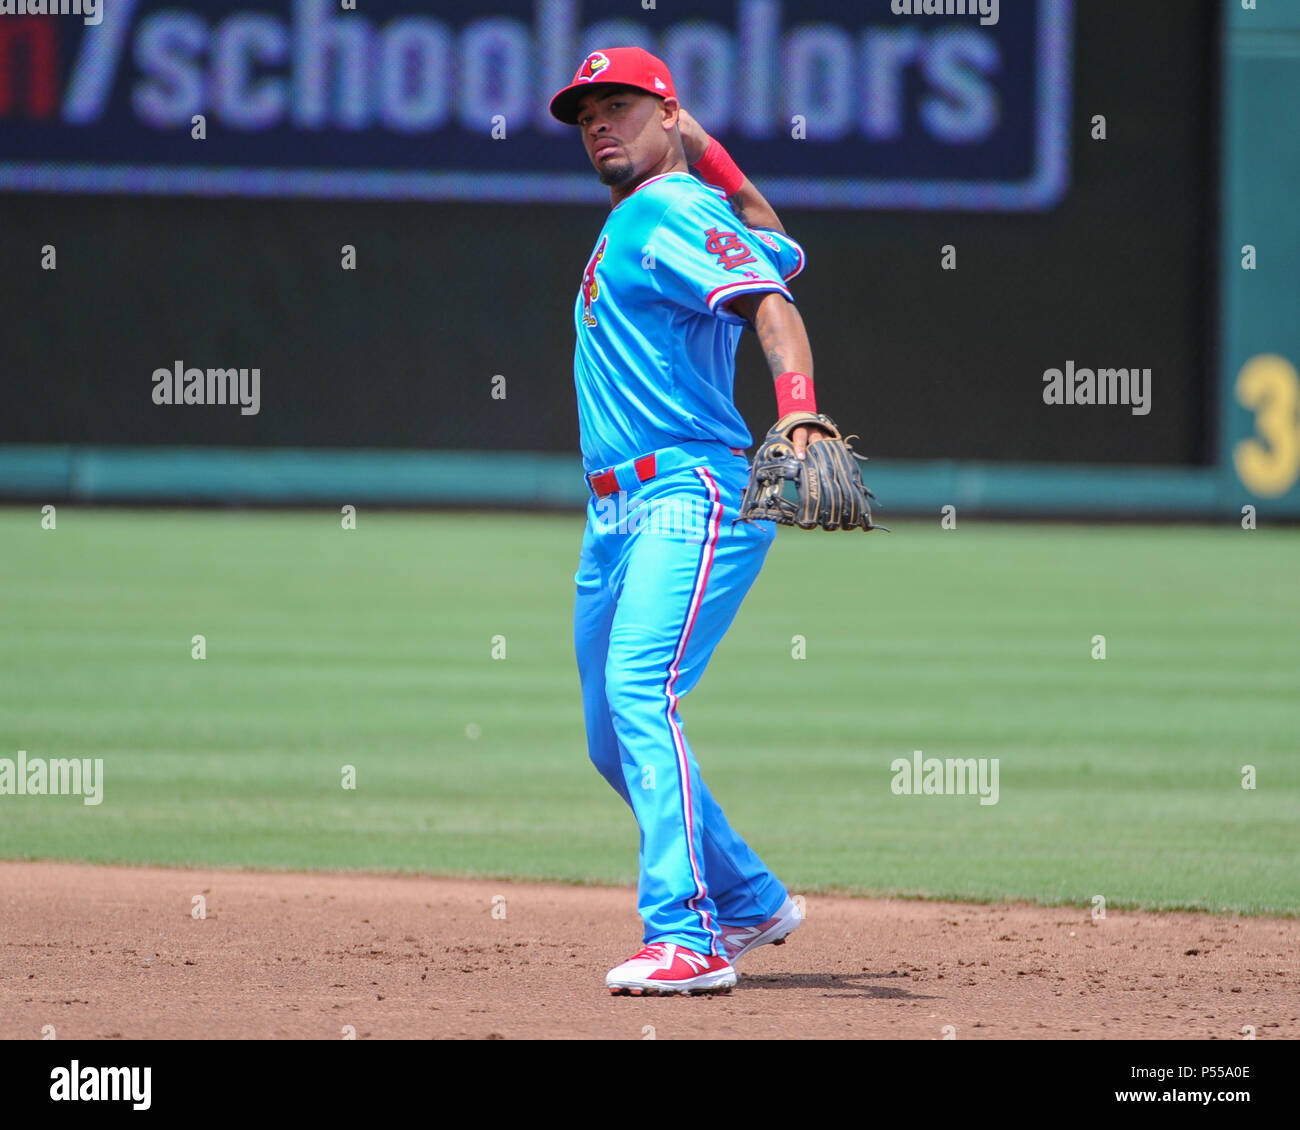 Auto Zone Park. 24th June, 2018. TN, United States; Memphis infielder, Edmundo Sosa (73), prepares to throw to 1st base during the Pacific Coast League Triple-A baseball game at Auto Zone Park. Memphis defeated New Orleans, 11-5. Kevin Langley/CSM/Alamy Live News - Stock Image